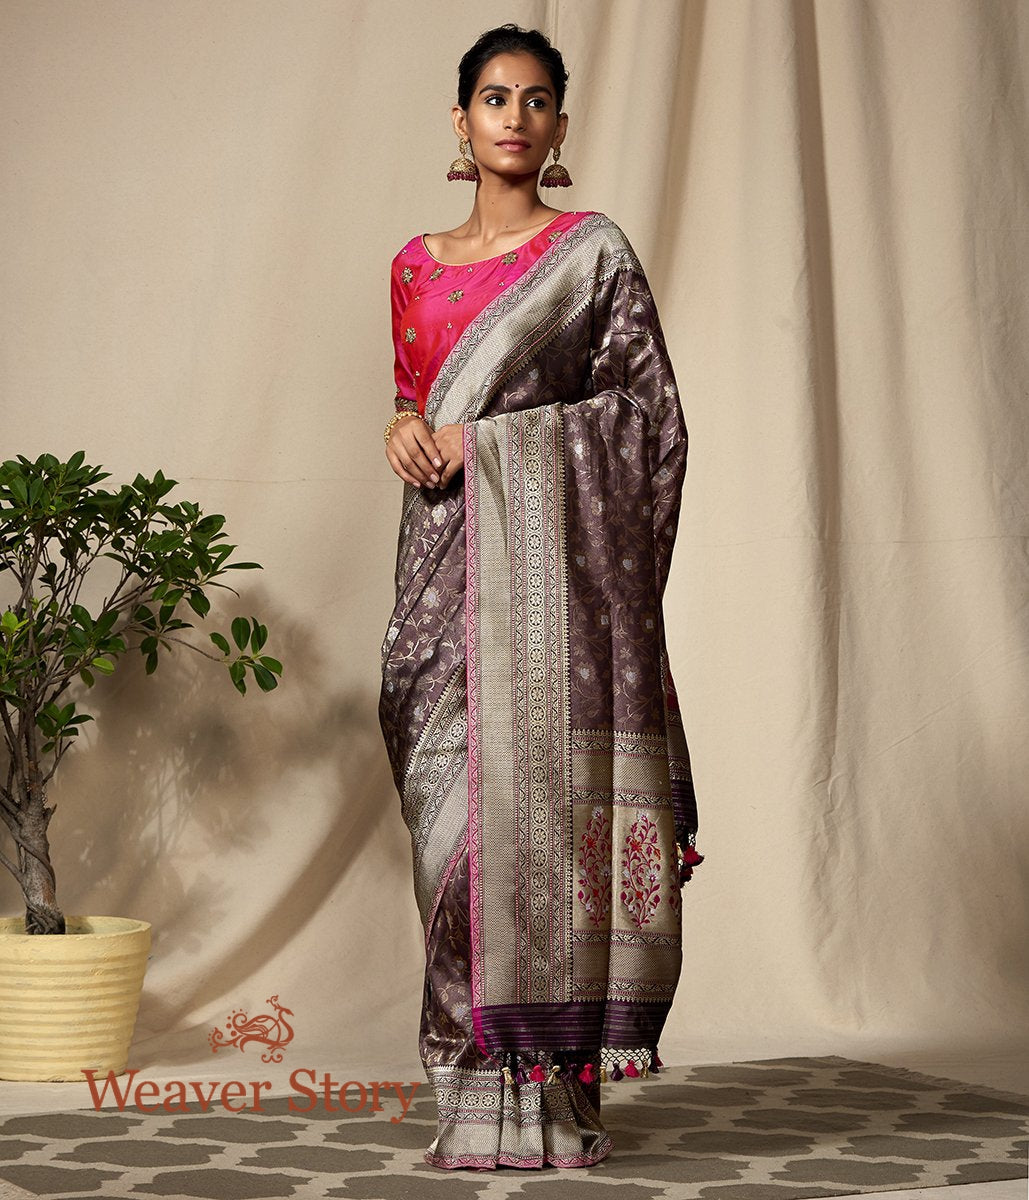 Handwoven Wine Banarasi Kimkhab Saree with Brocade Blouse